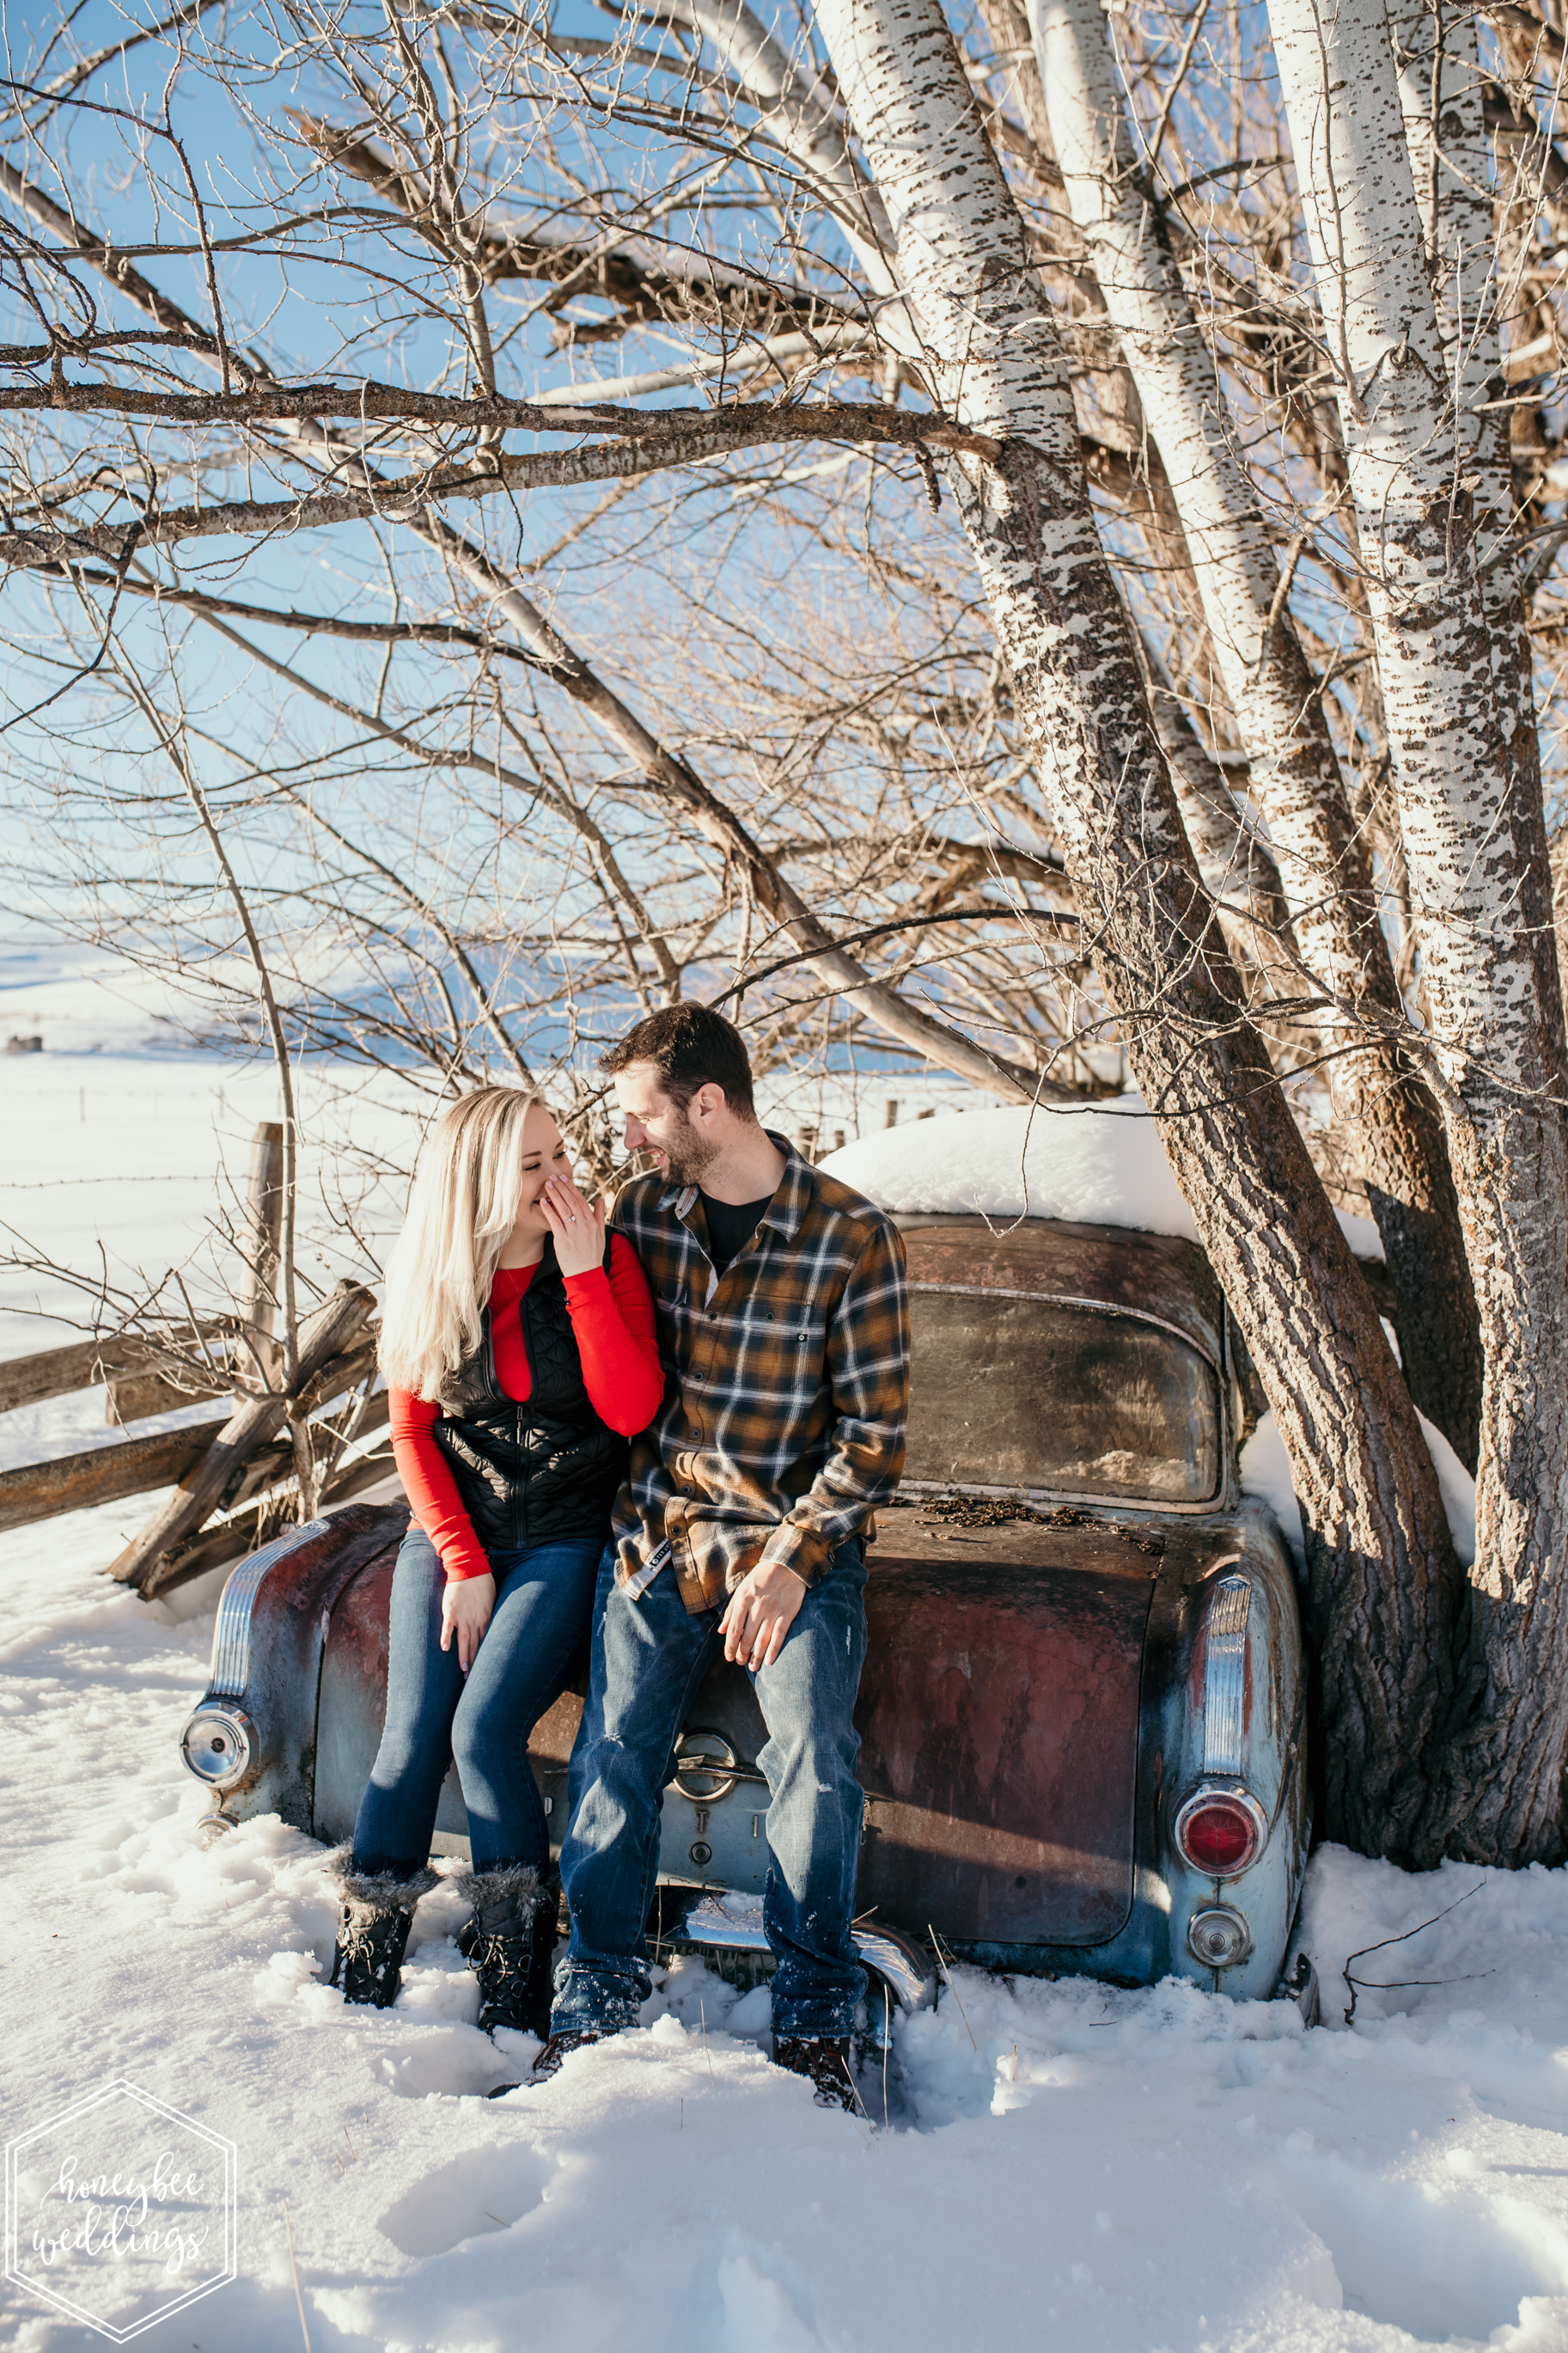 018Montana Wedding Photographer_Winter Engagement_Polson_Jessica & Brian_March 09, 2019-225.jpg